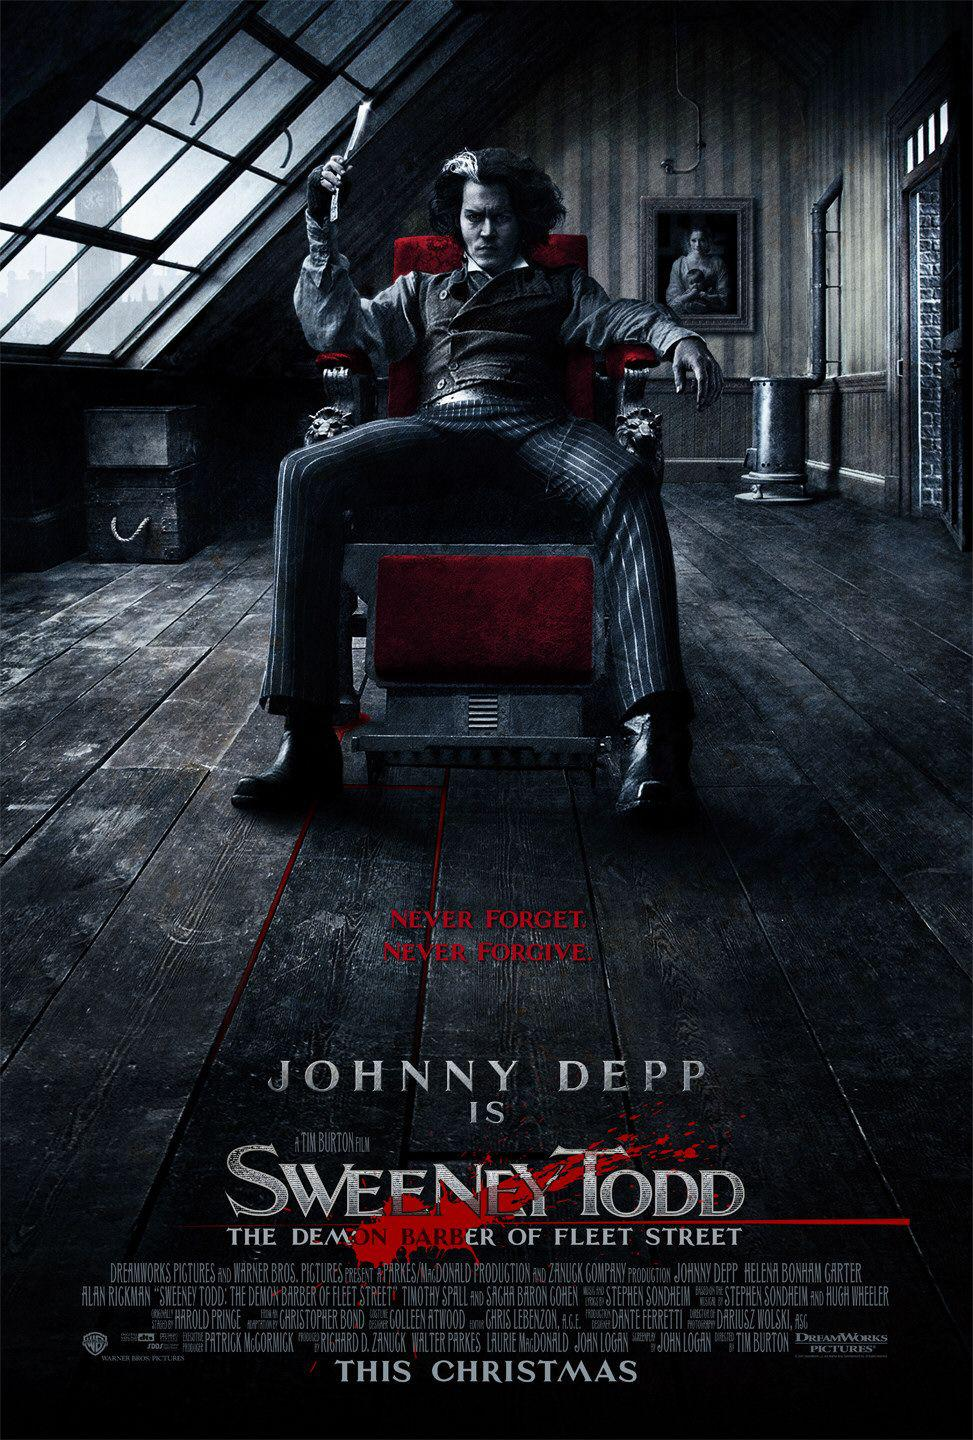 Sweeney Todd - Il diabolico barbiere di Fleet Street - The Demon Barber of Fleet Street - Johnny Depp - poster